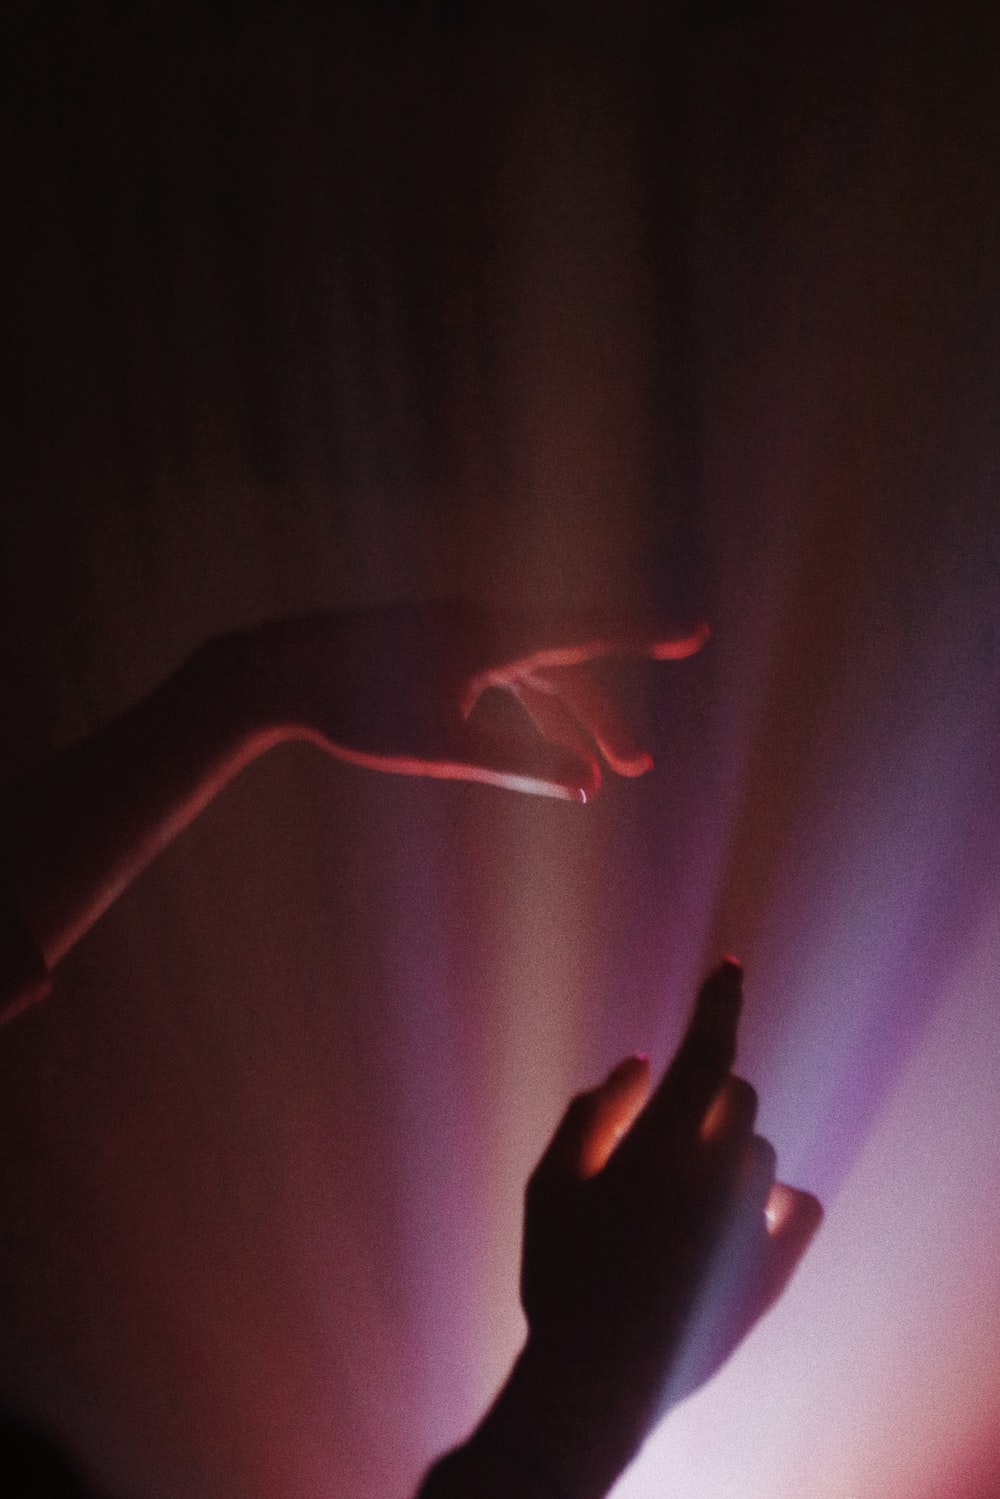 person holding red light in dark room